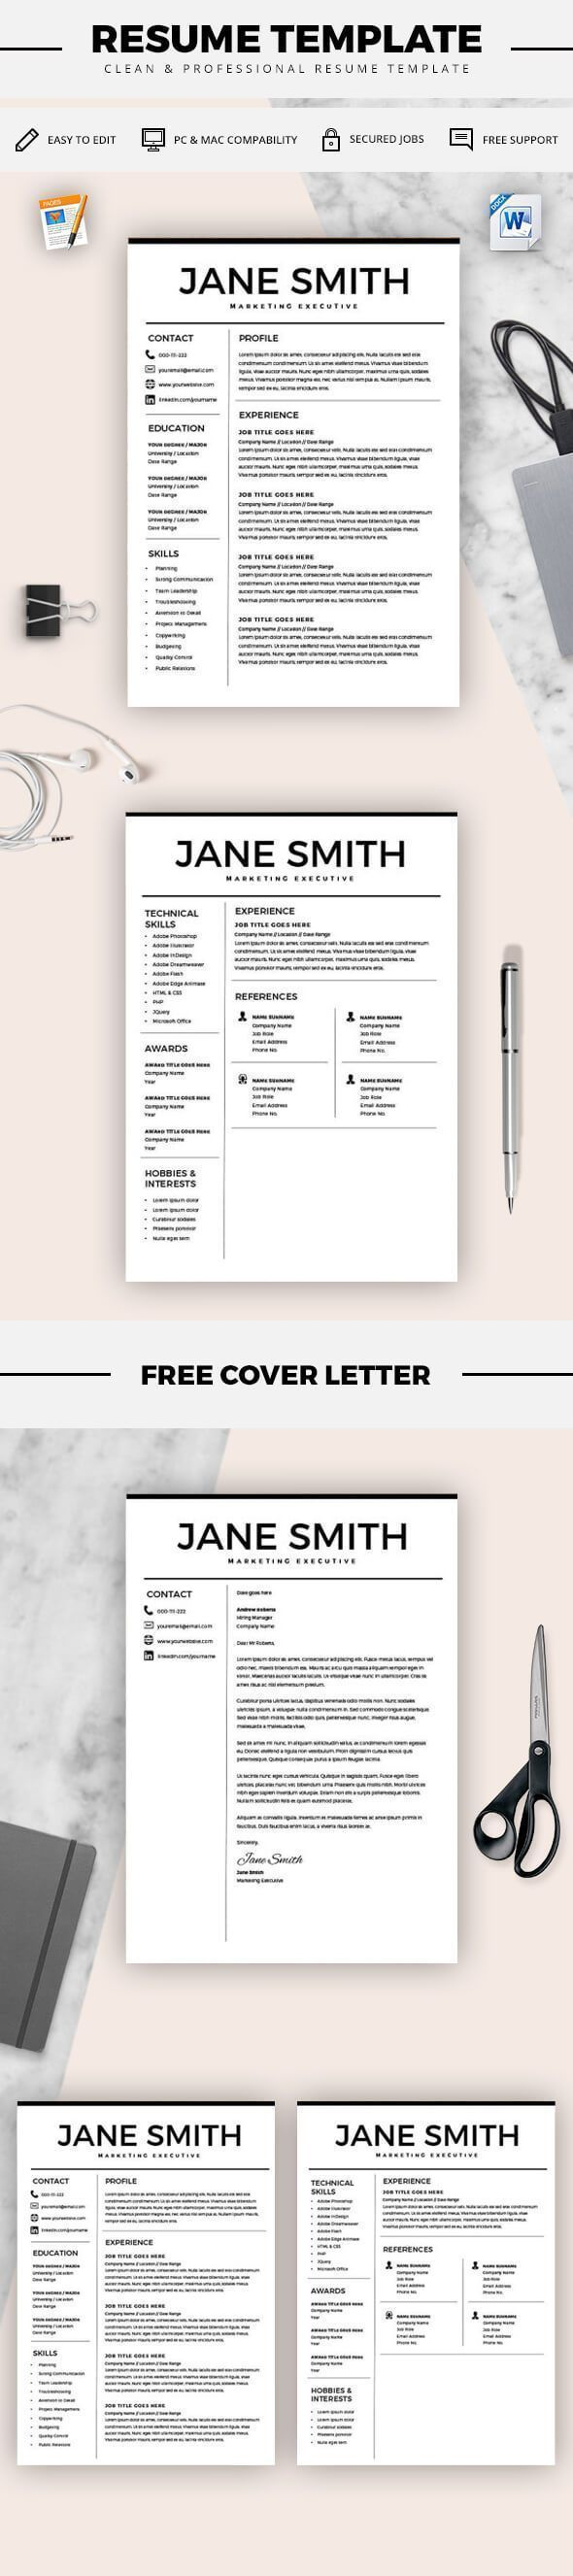 Resume for Microsoft Word - Minimal Resume Template - CV Template + Cover Letter for MS Word - Best Resume Templates - Instant Download